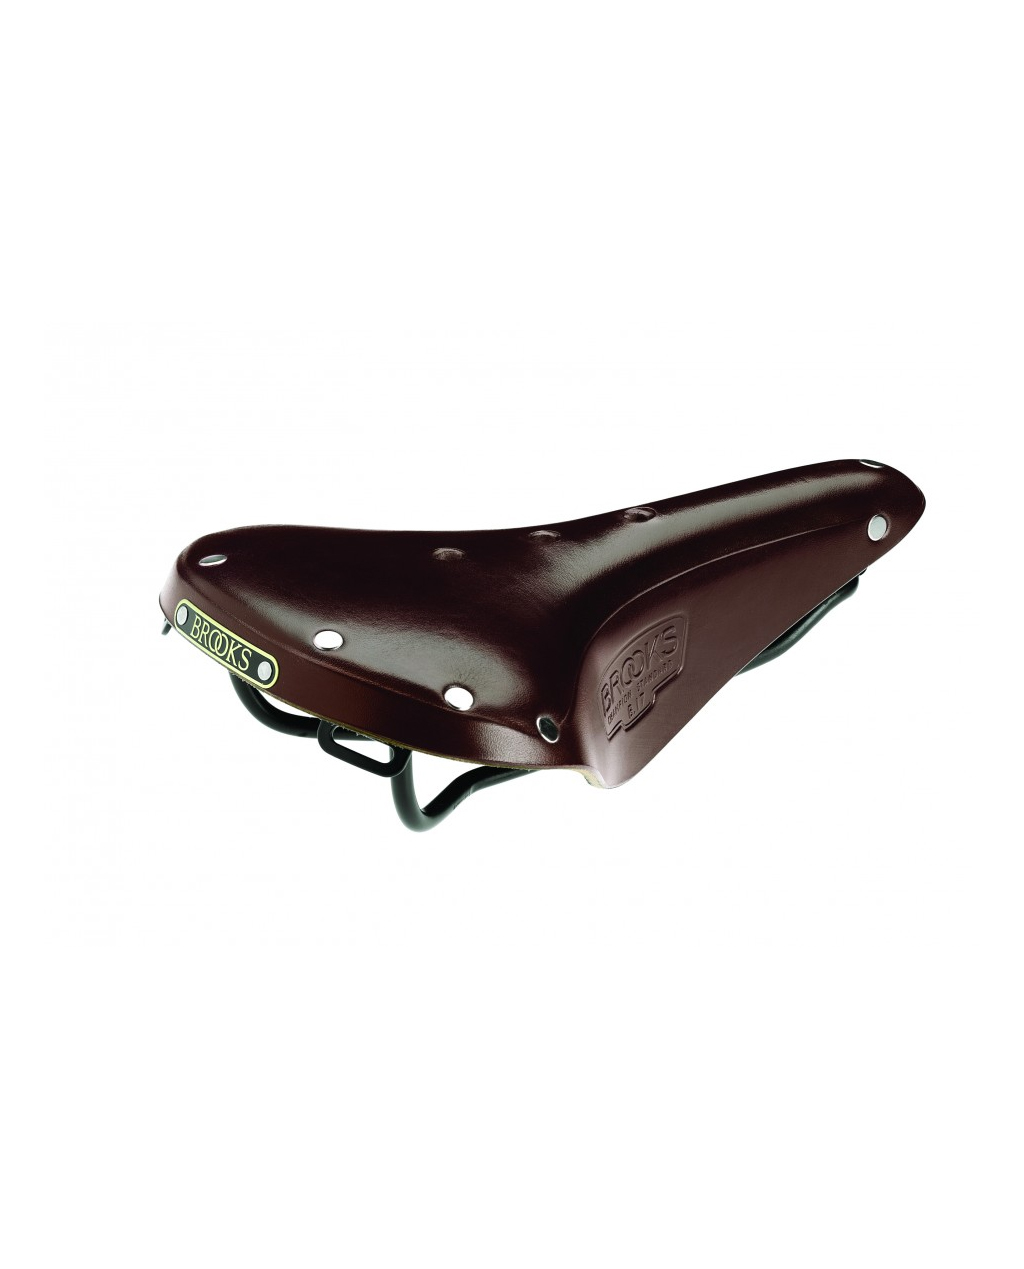 Brooks B17 Standard - Brown